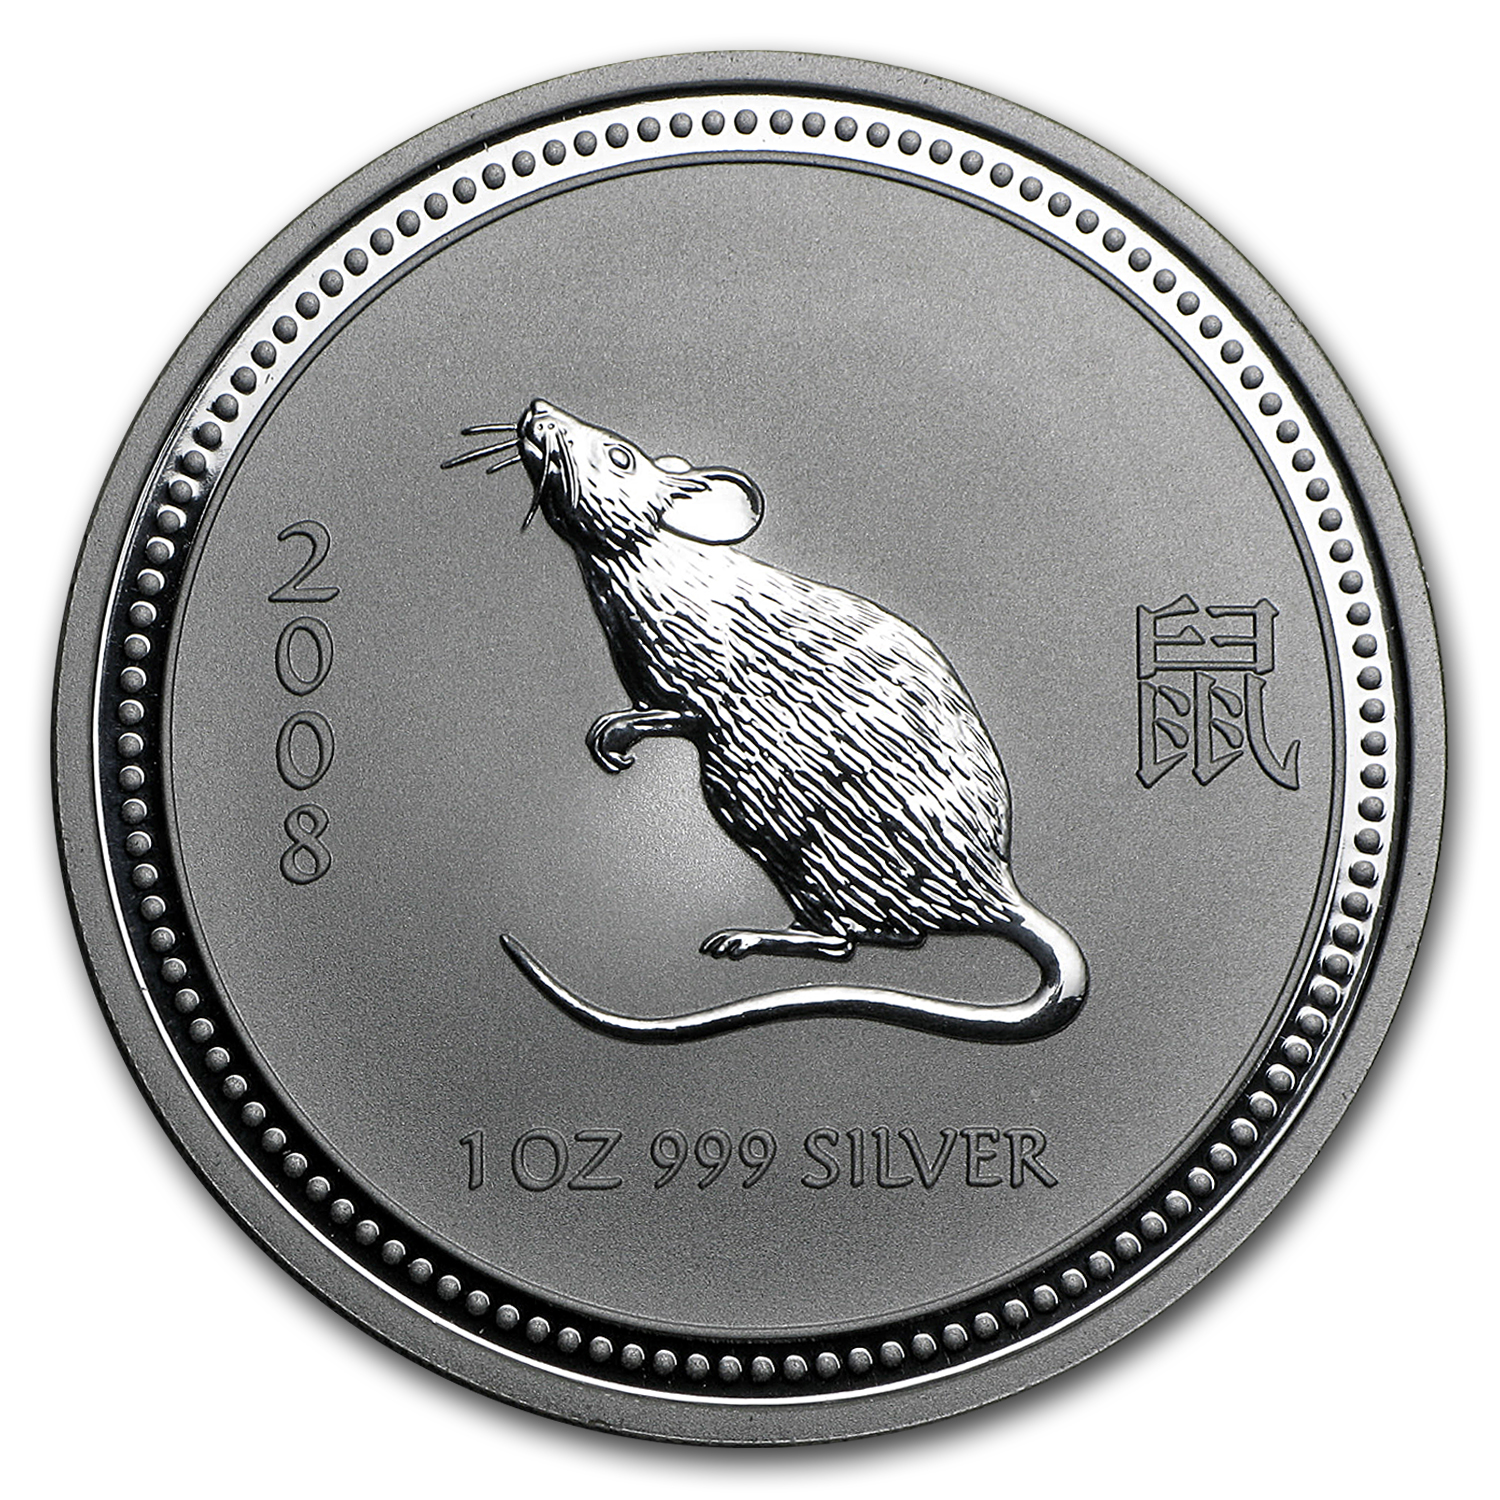 2008 1 oz Silver Lunar Year of the Mouse (Series I)